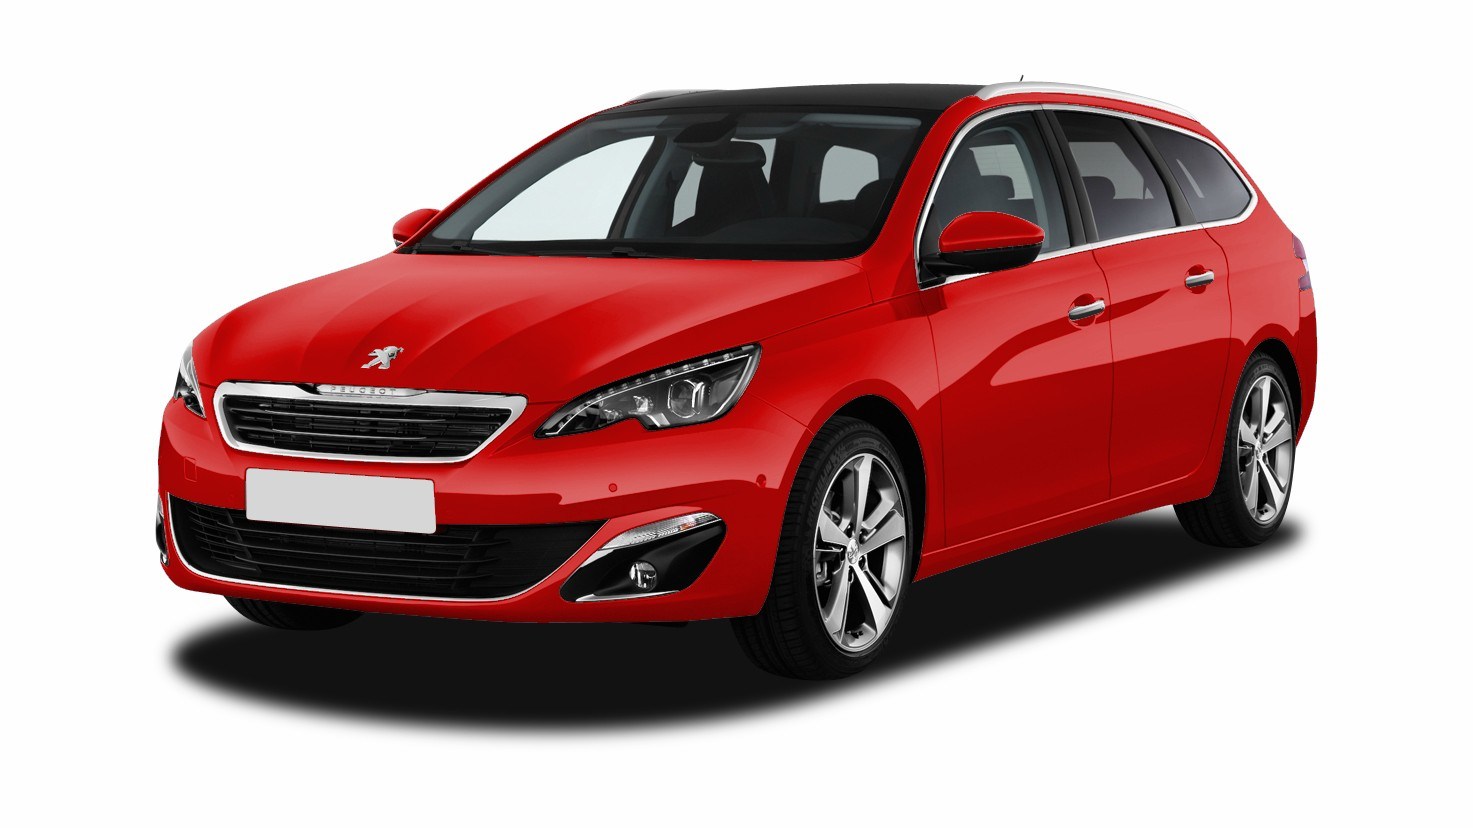 voiture peugeot 308 sw 1 6 hdi 120 auto active gps toit pano occasion diesel 2016 10 km. Black Bedroom Furniture Sets. Home Design Ideas